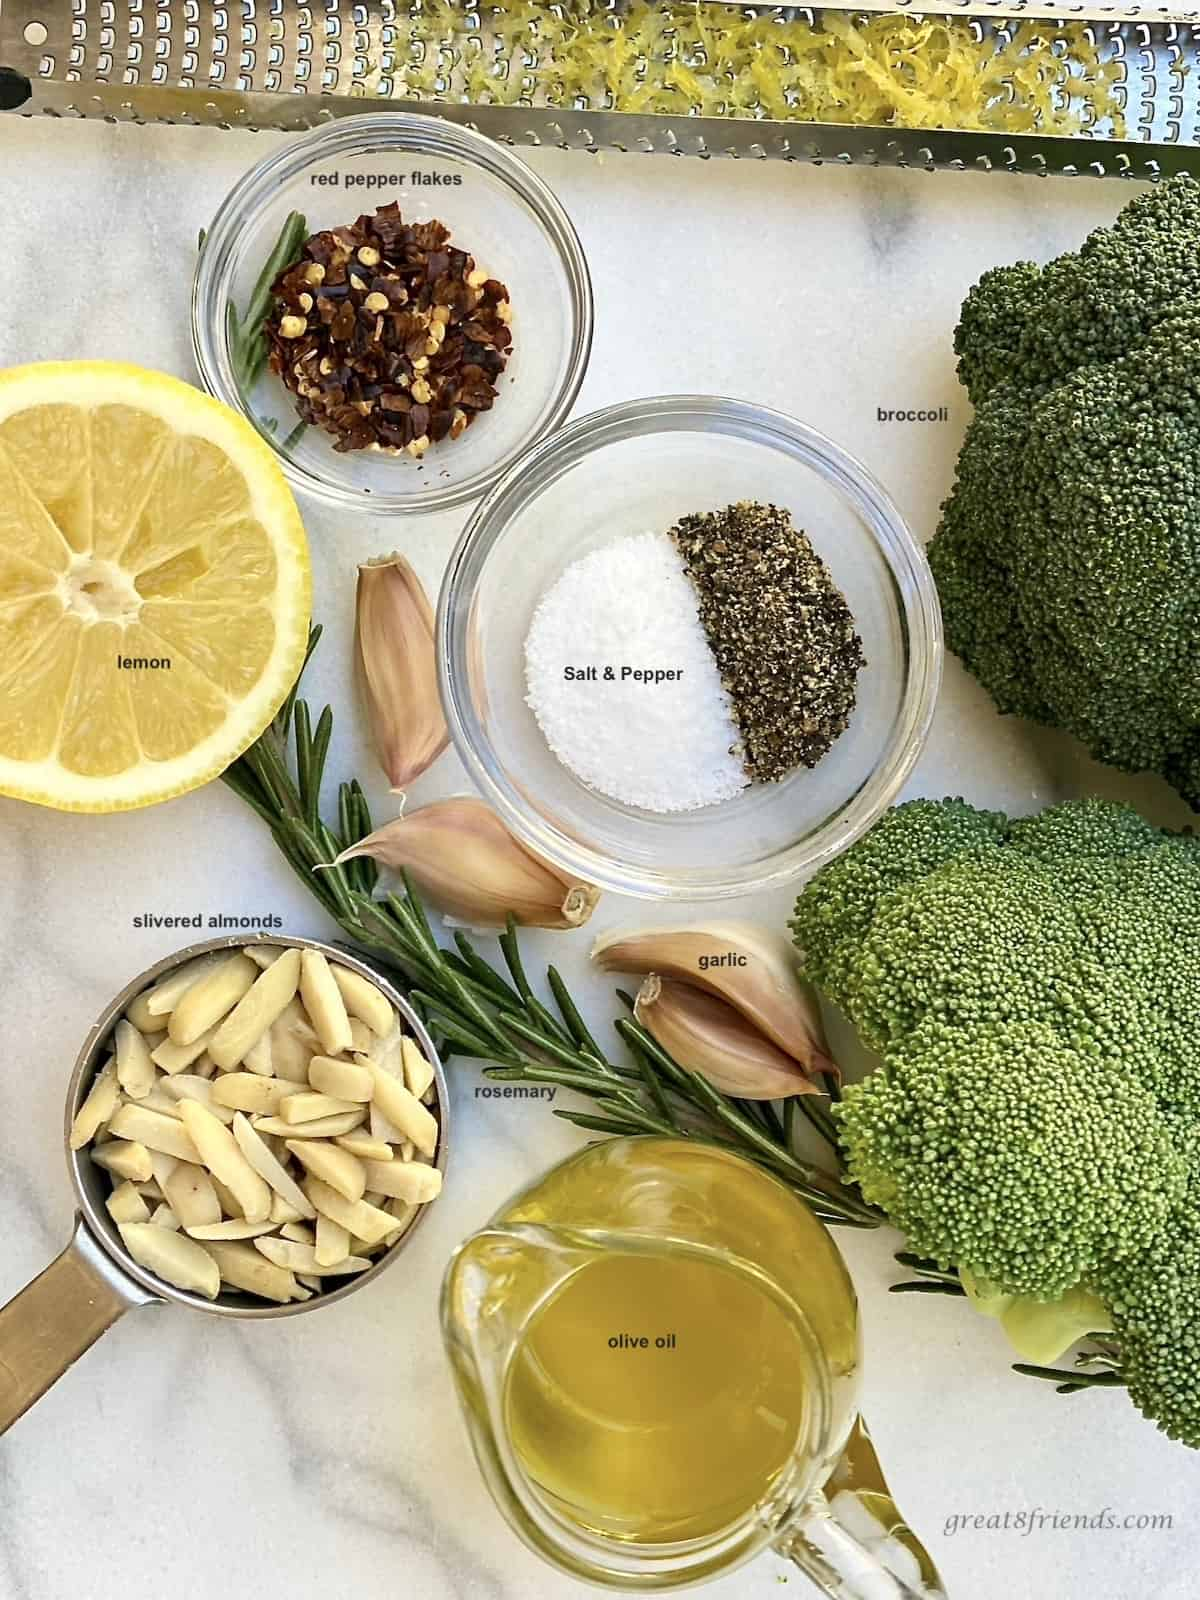 Ingredients for roasting broccoli. On the counter is broccoli, lemon, almonds, salt and pepper, olive oil, rosemary, garlic and red pepper flakes.